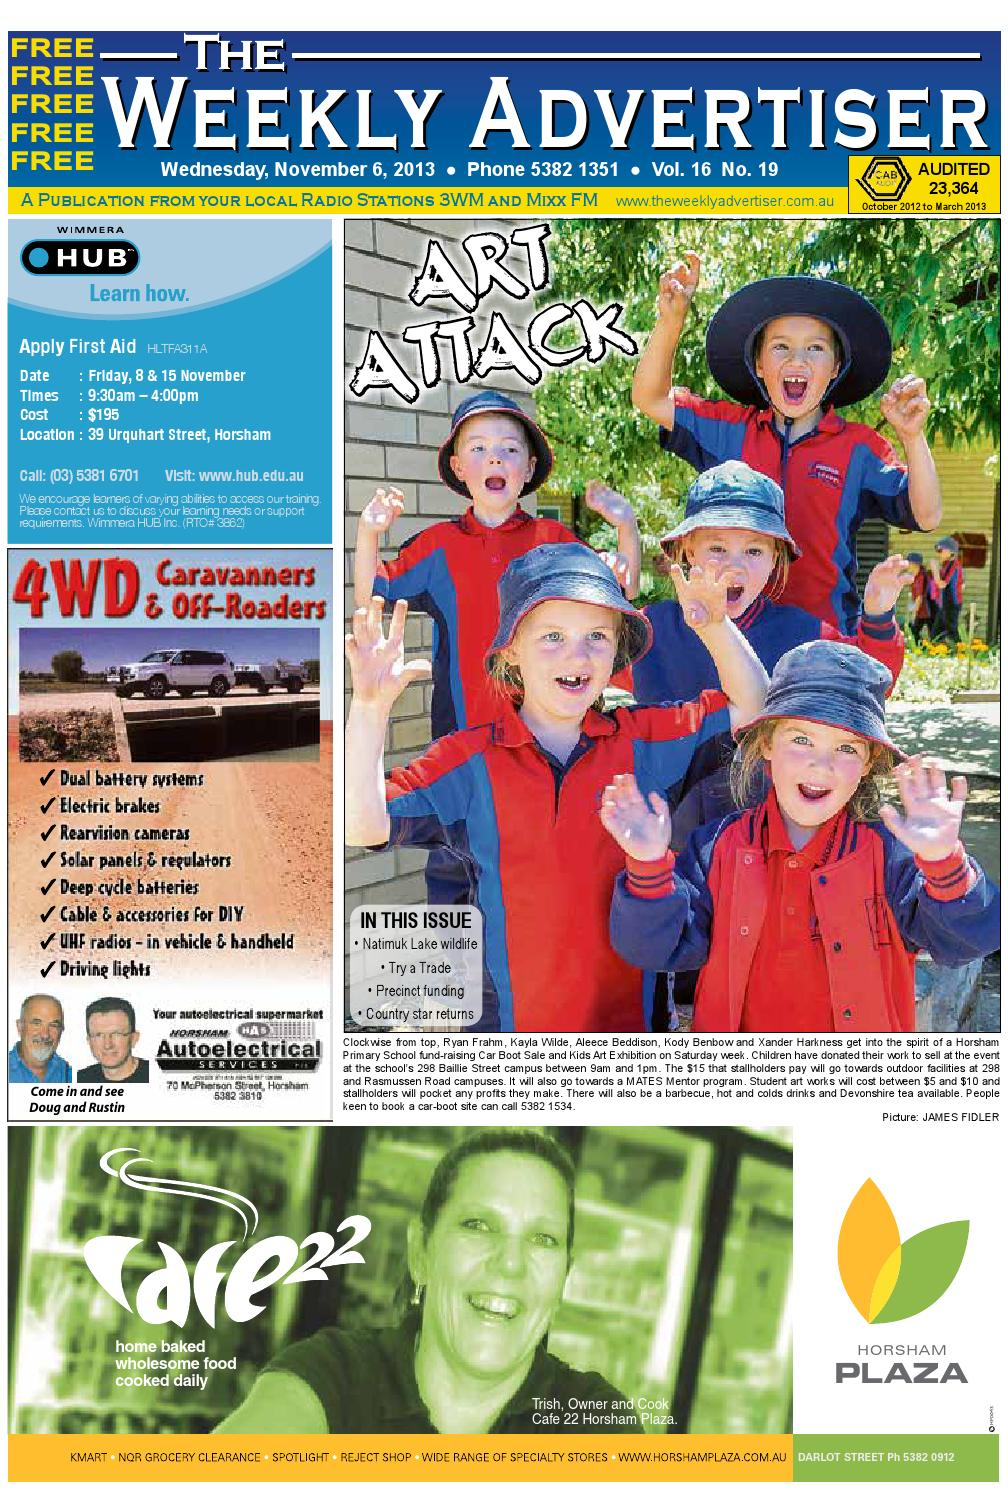 The Weekly Advertiser Wednesday November 6 2013 By Froot Loops 300g Free Foot Ball Bowl P Issuu